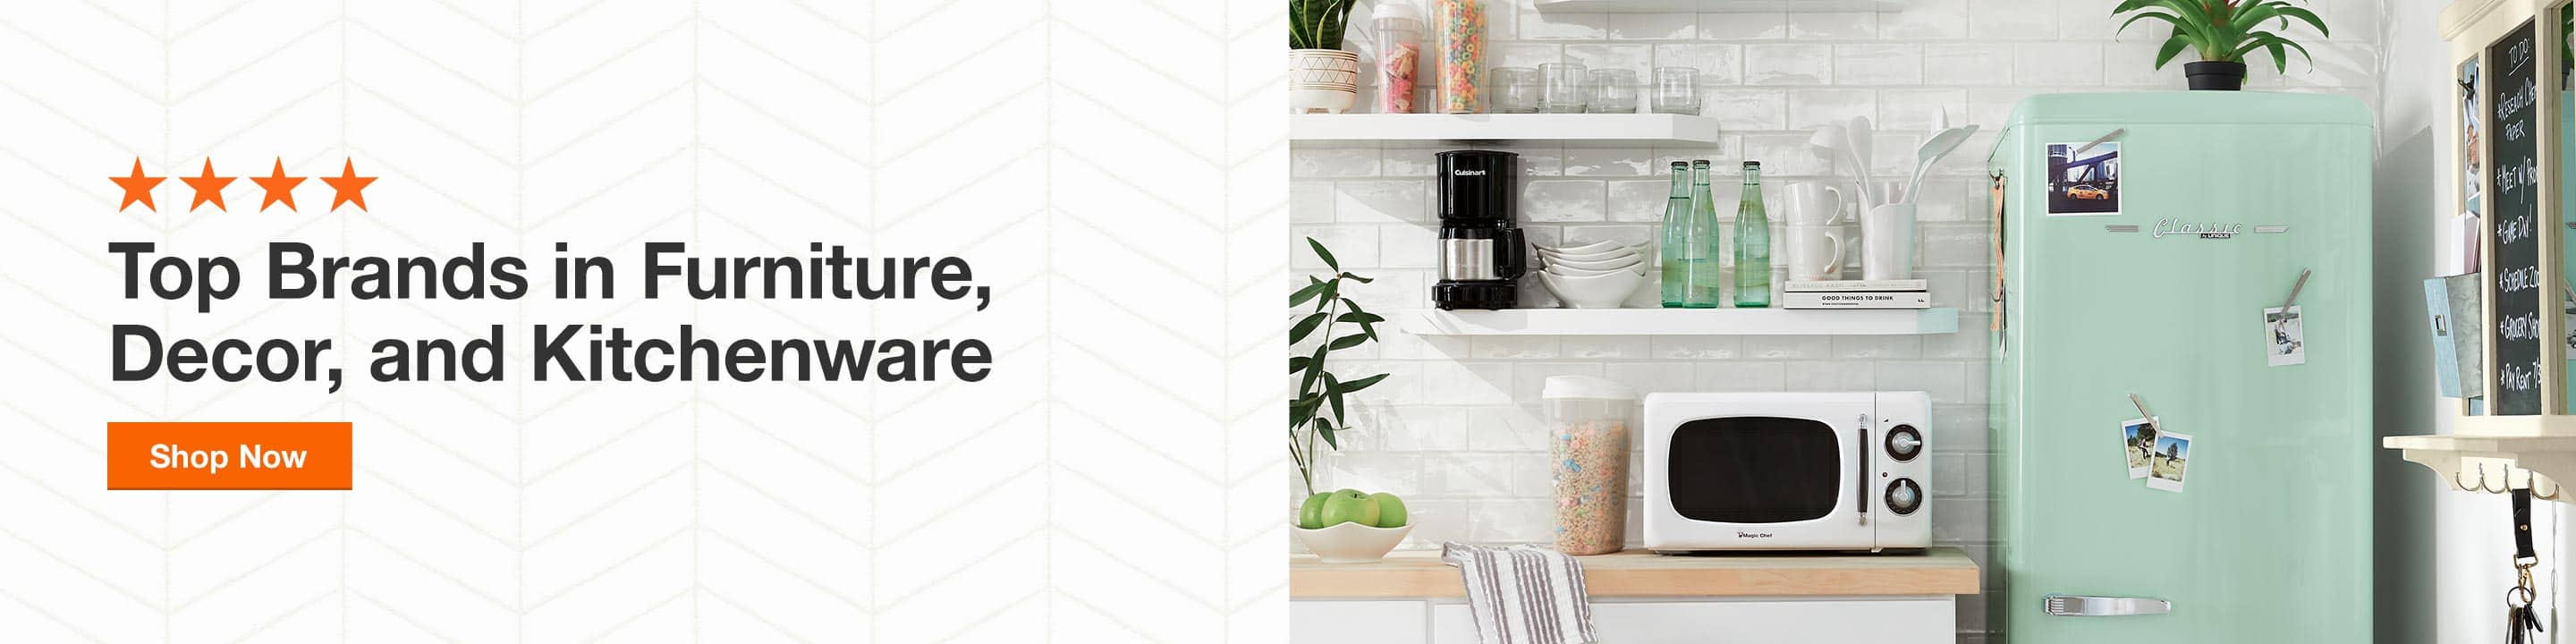 Shop Home Depot's Top Brands in Furniture, Decor, and Kitchenware